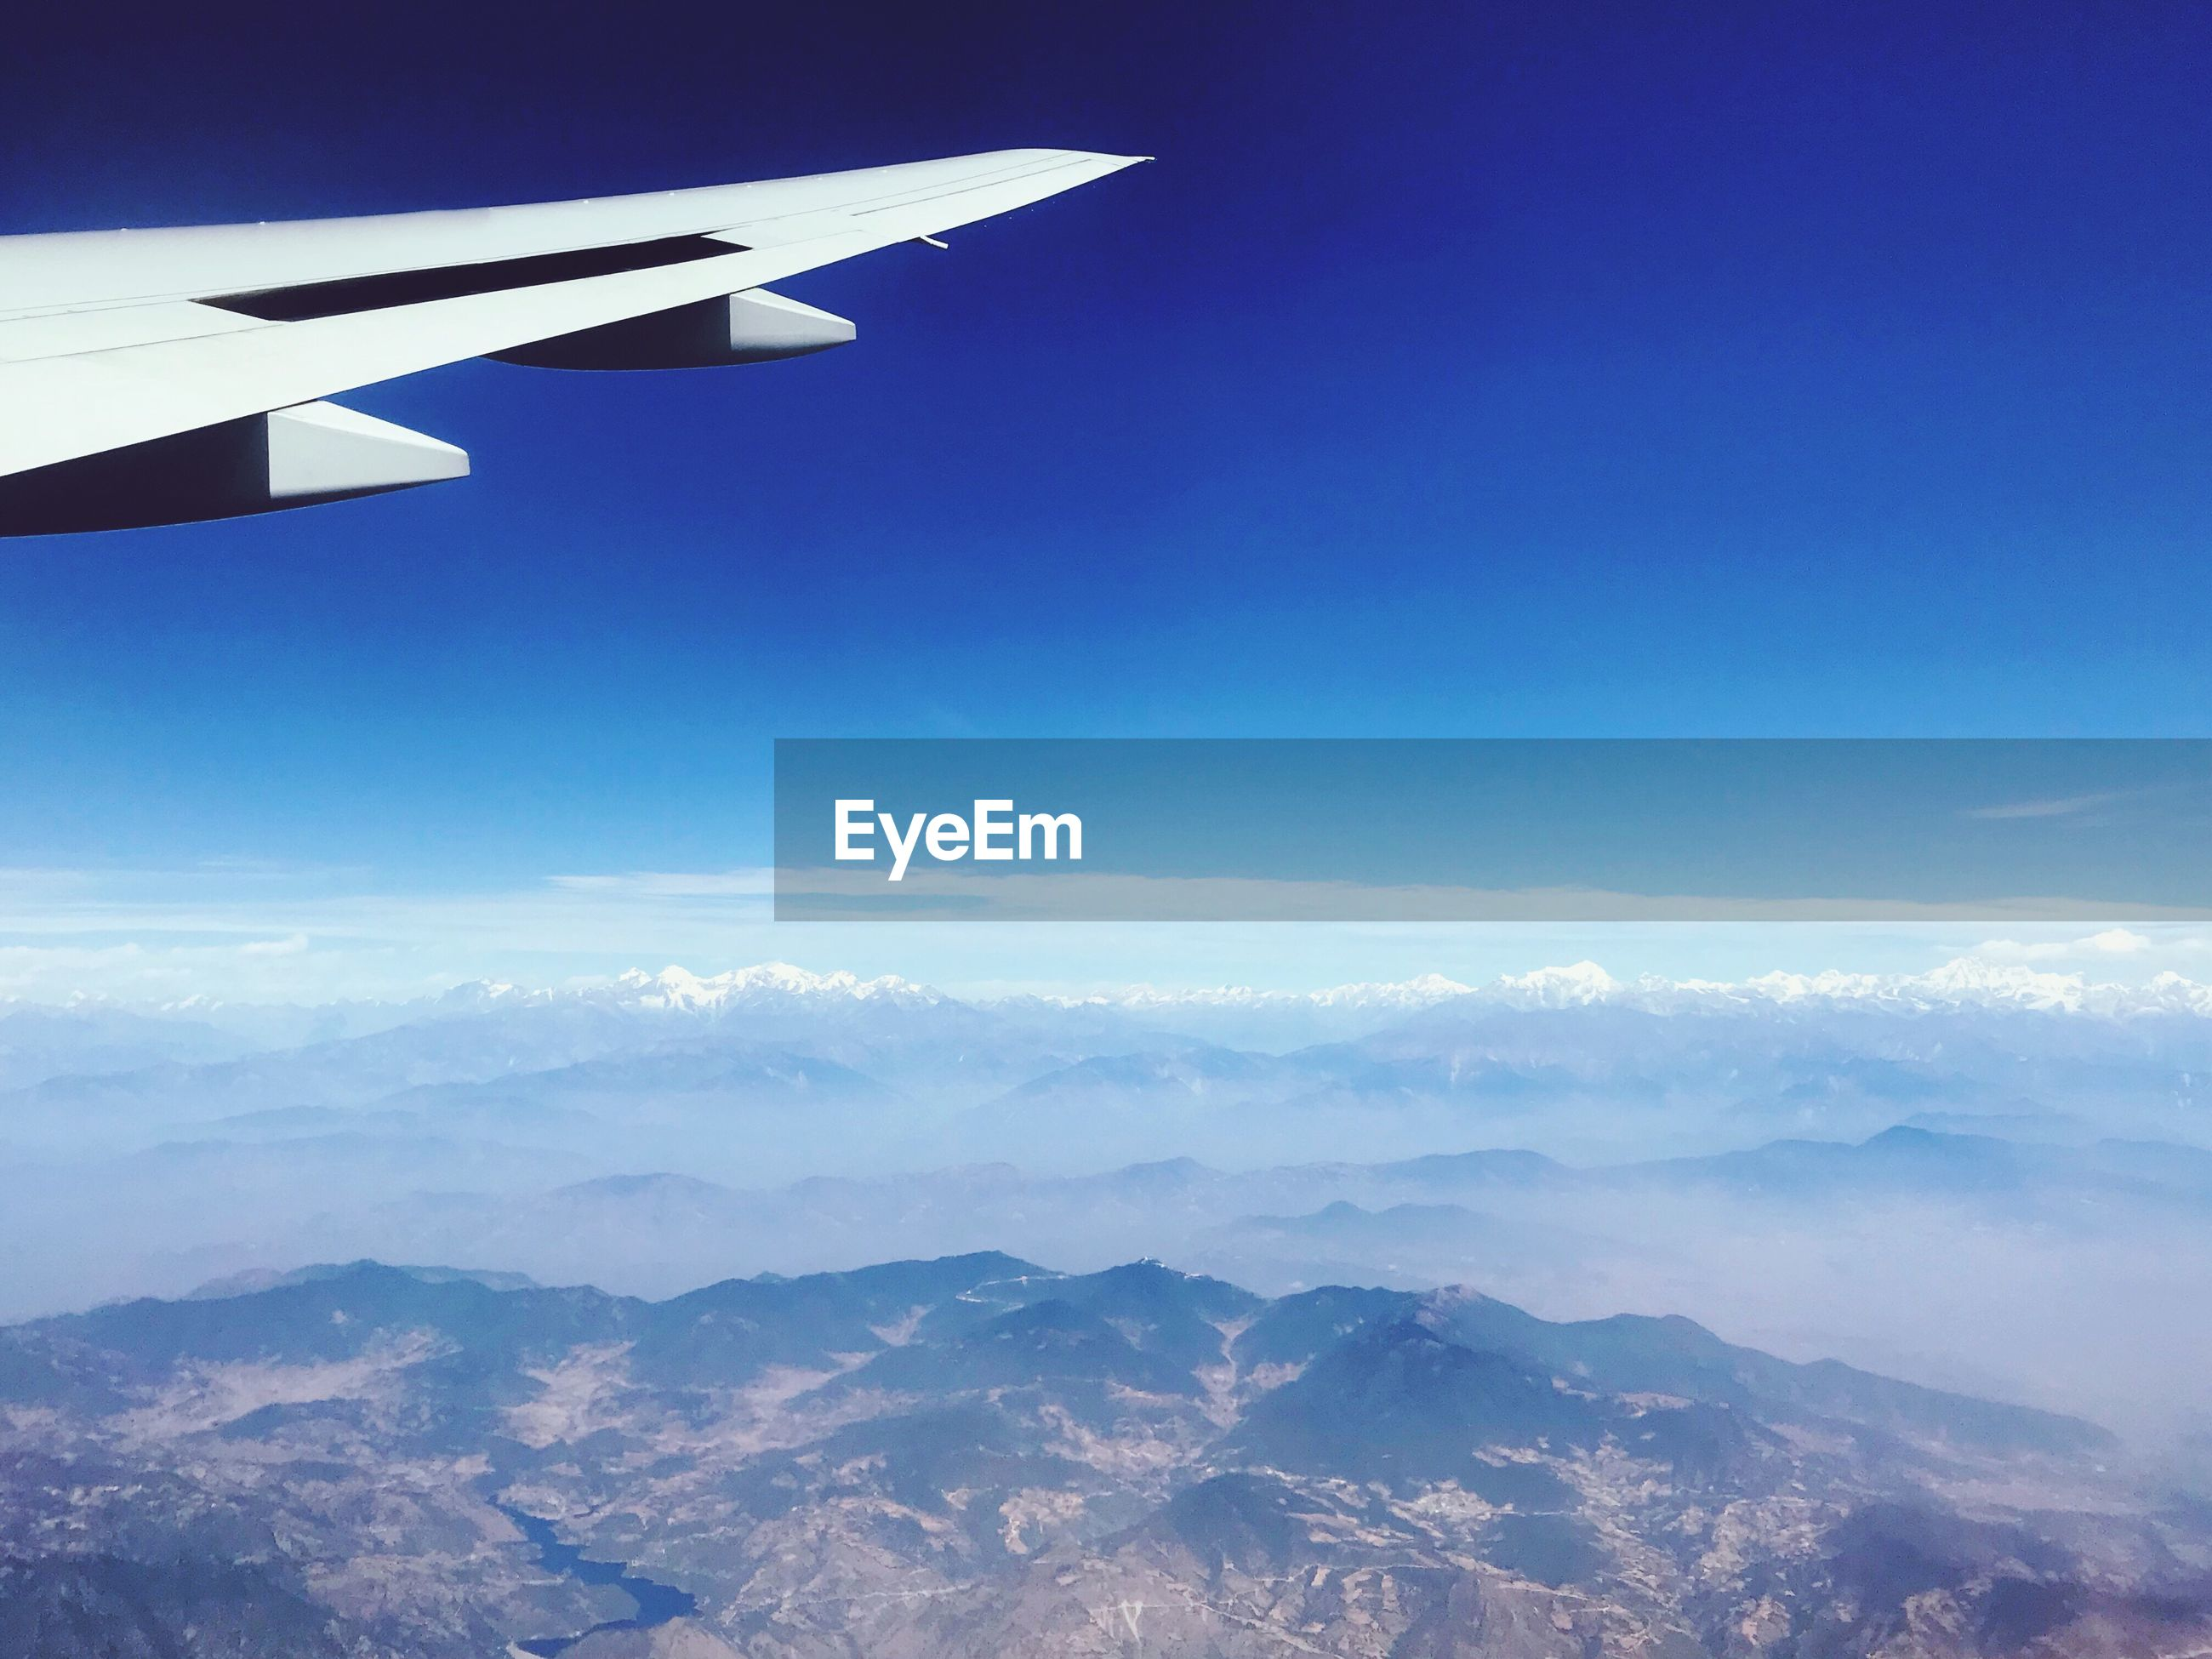 AIRPLANE FLYING OVER MOUNTAINS AGAINST BLUE SKY